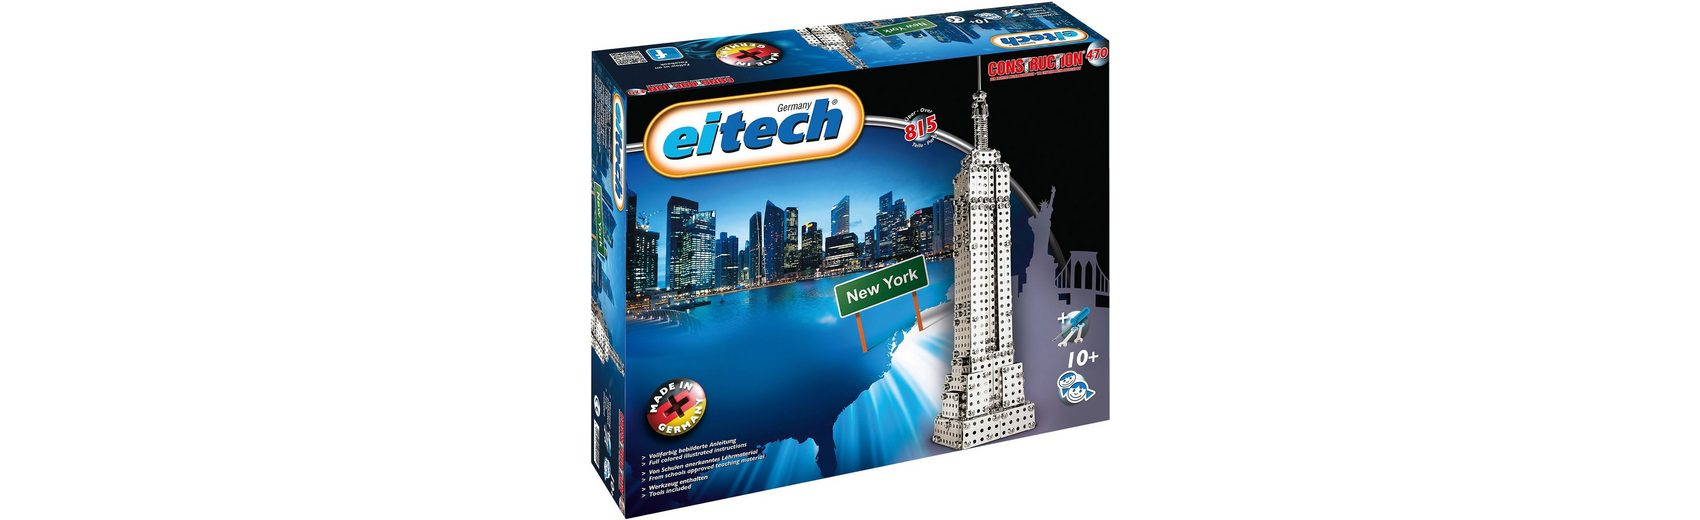 Eitech 470 KLASSIKER Metallbaukasten - New York Skyscraper Empire S